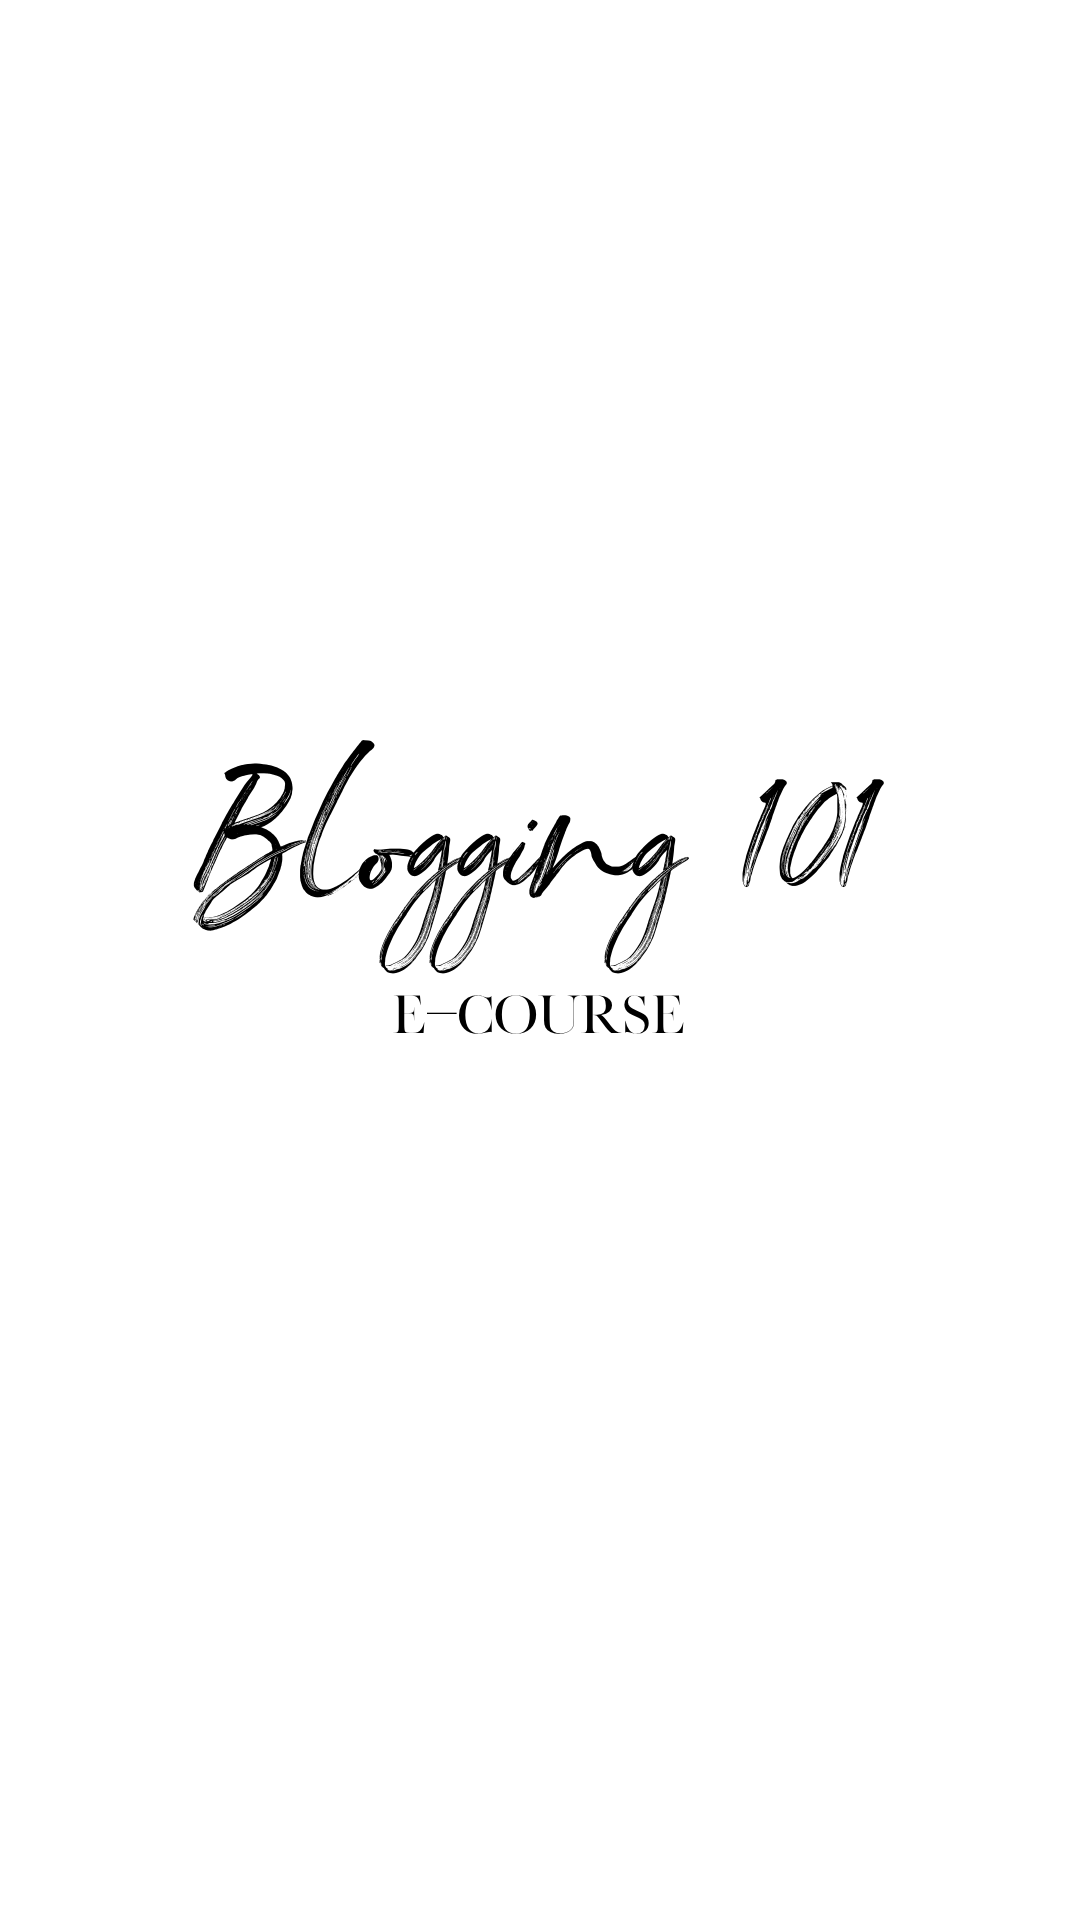 Blogging 101 E-Course